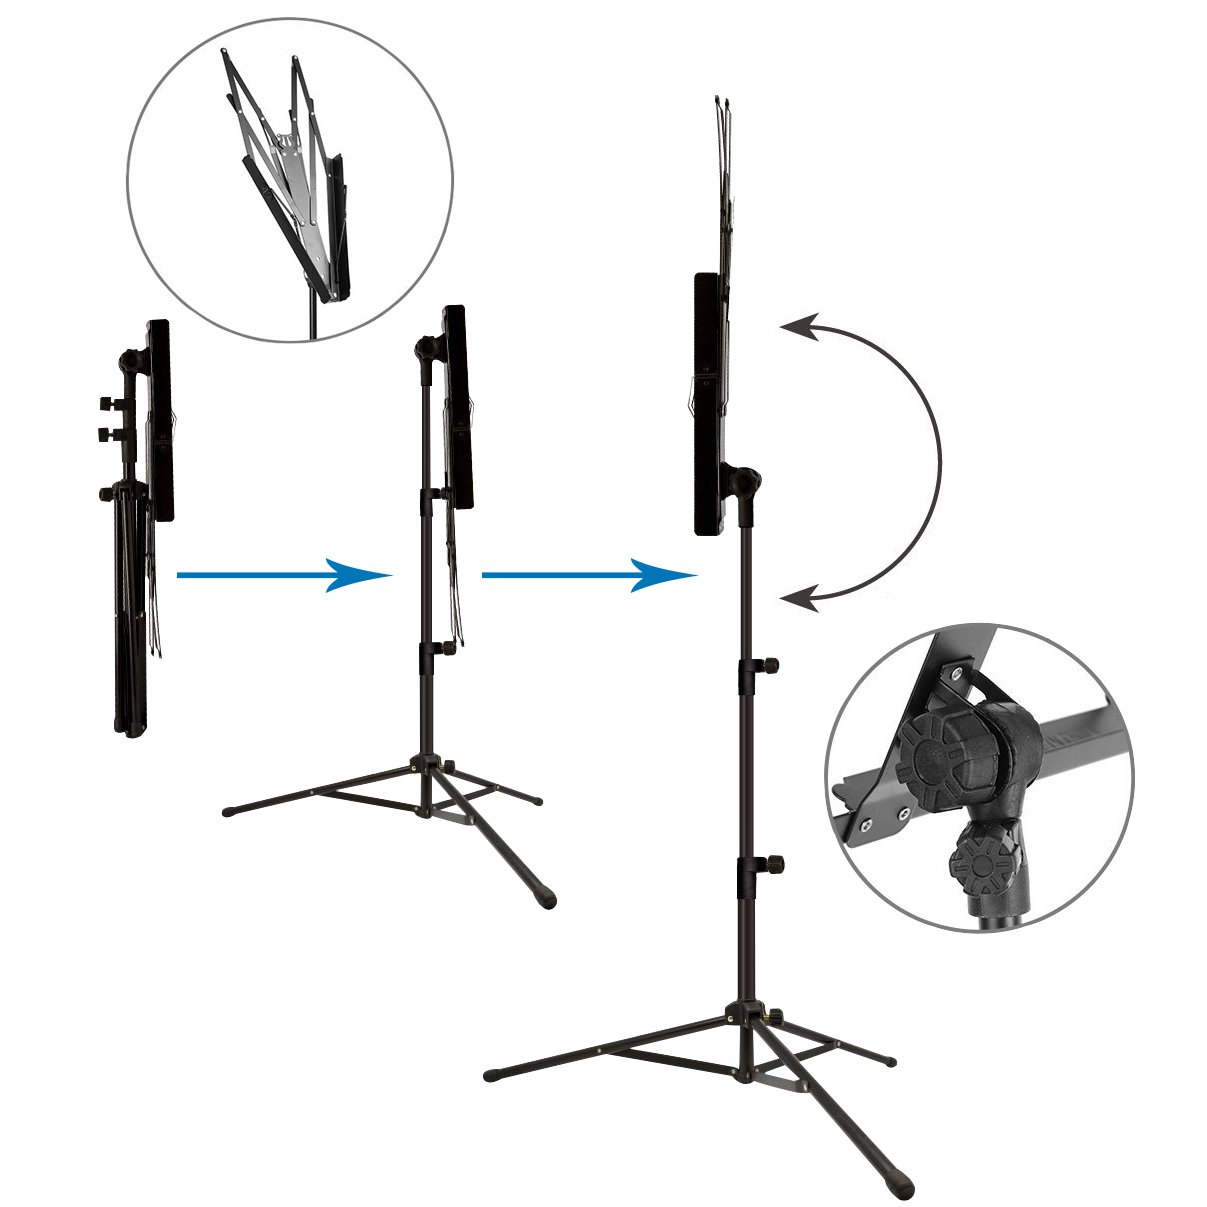 Music Stand Audo Folding Music Stand With Music Book Clip And Carry Bag Black (1Pack) by Audo (Image #3)